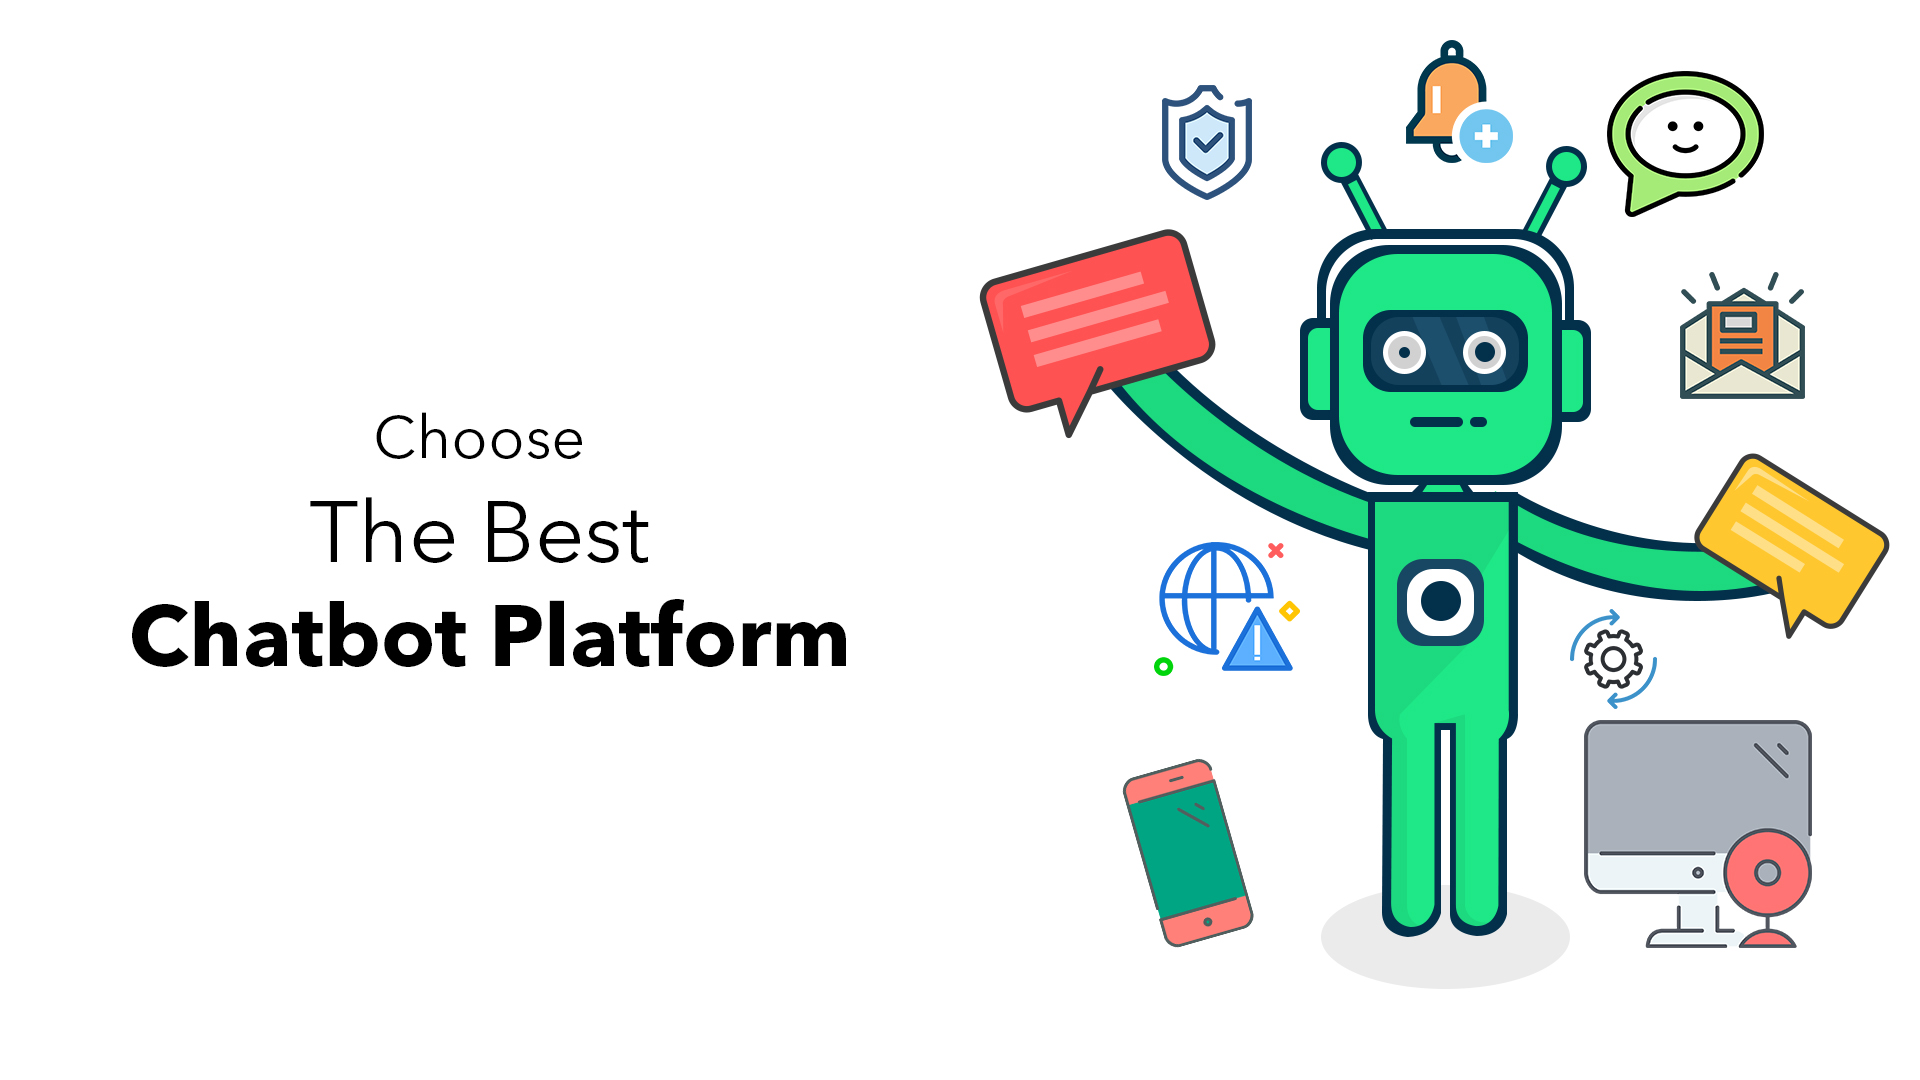 Guideline for choosing chatbot platform